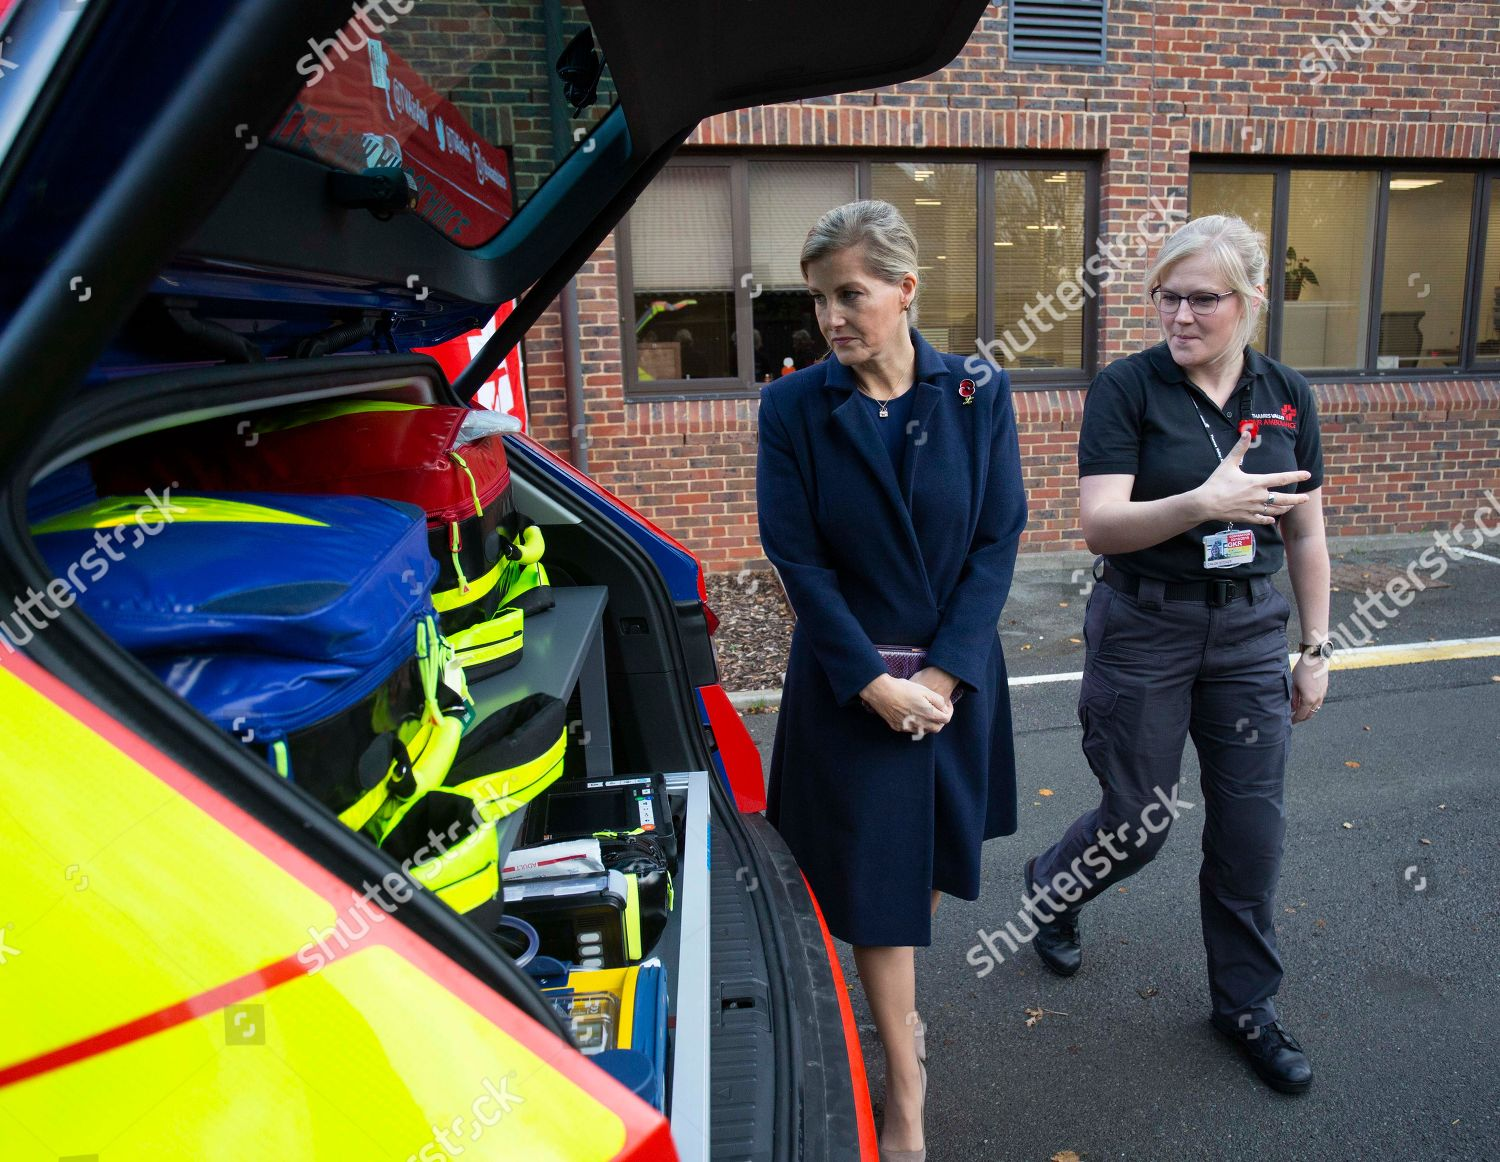 sophie-countess-of-wessex-opens-the-thames-valley-air-ambulance-headquarters-stokenchurch-buckinghamshire-uk-shutterstock-editorial-9968468a.jpg